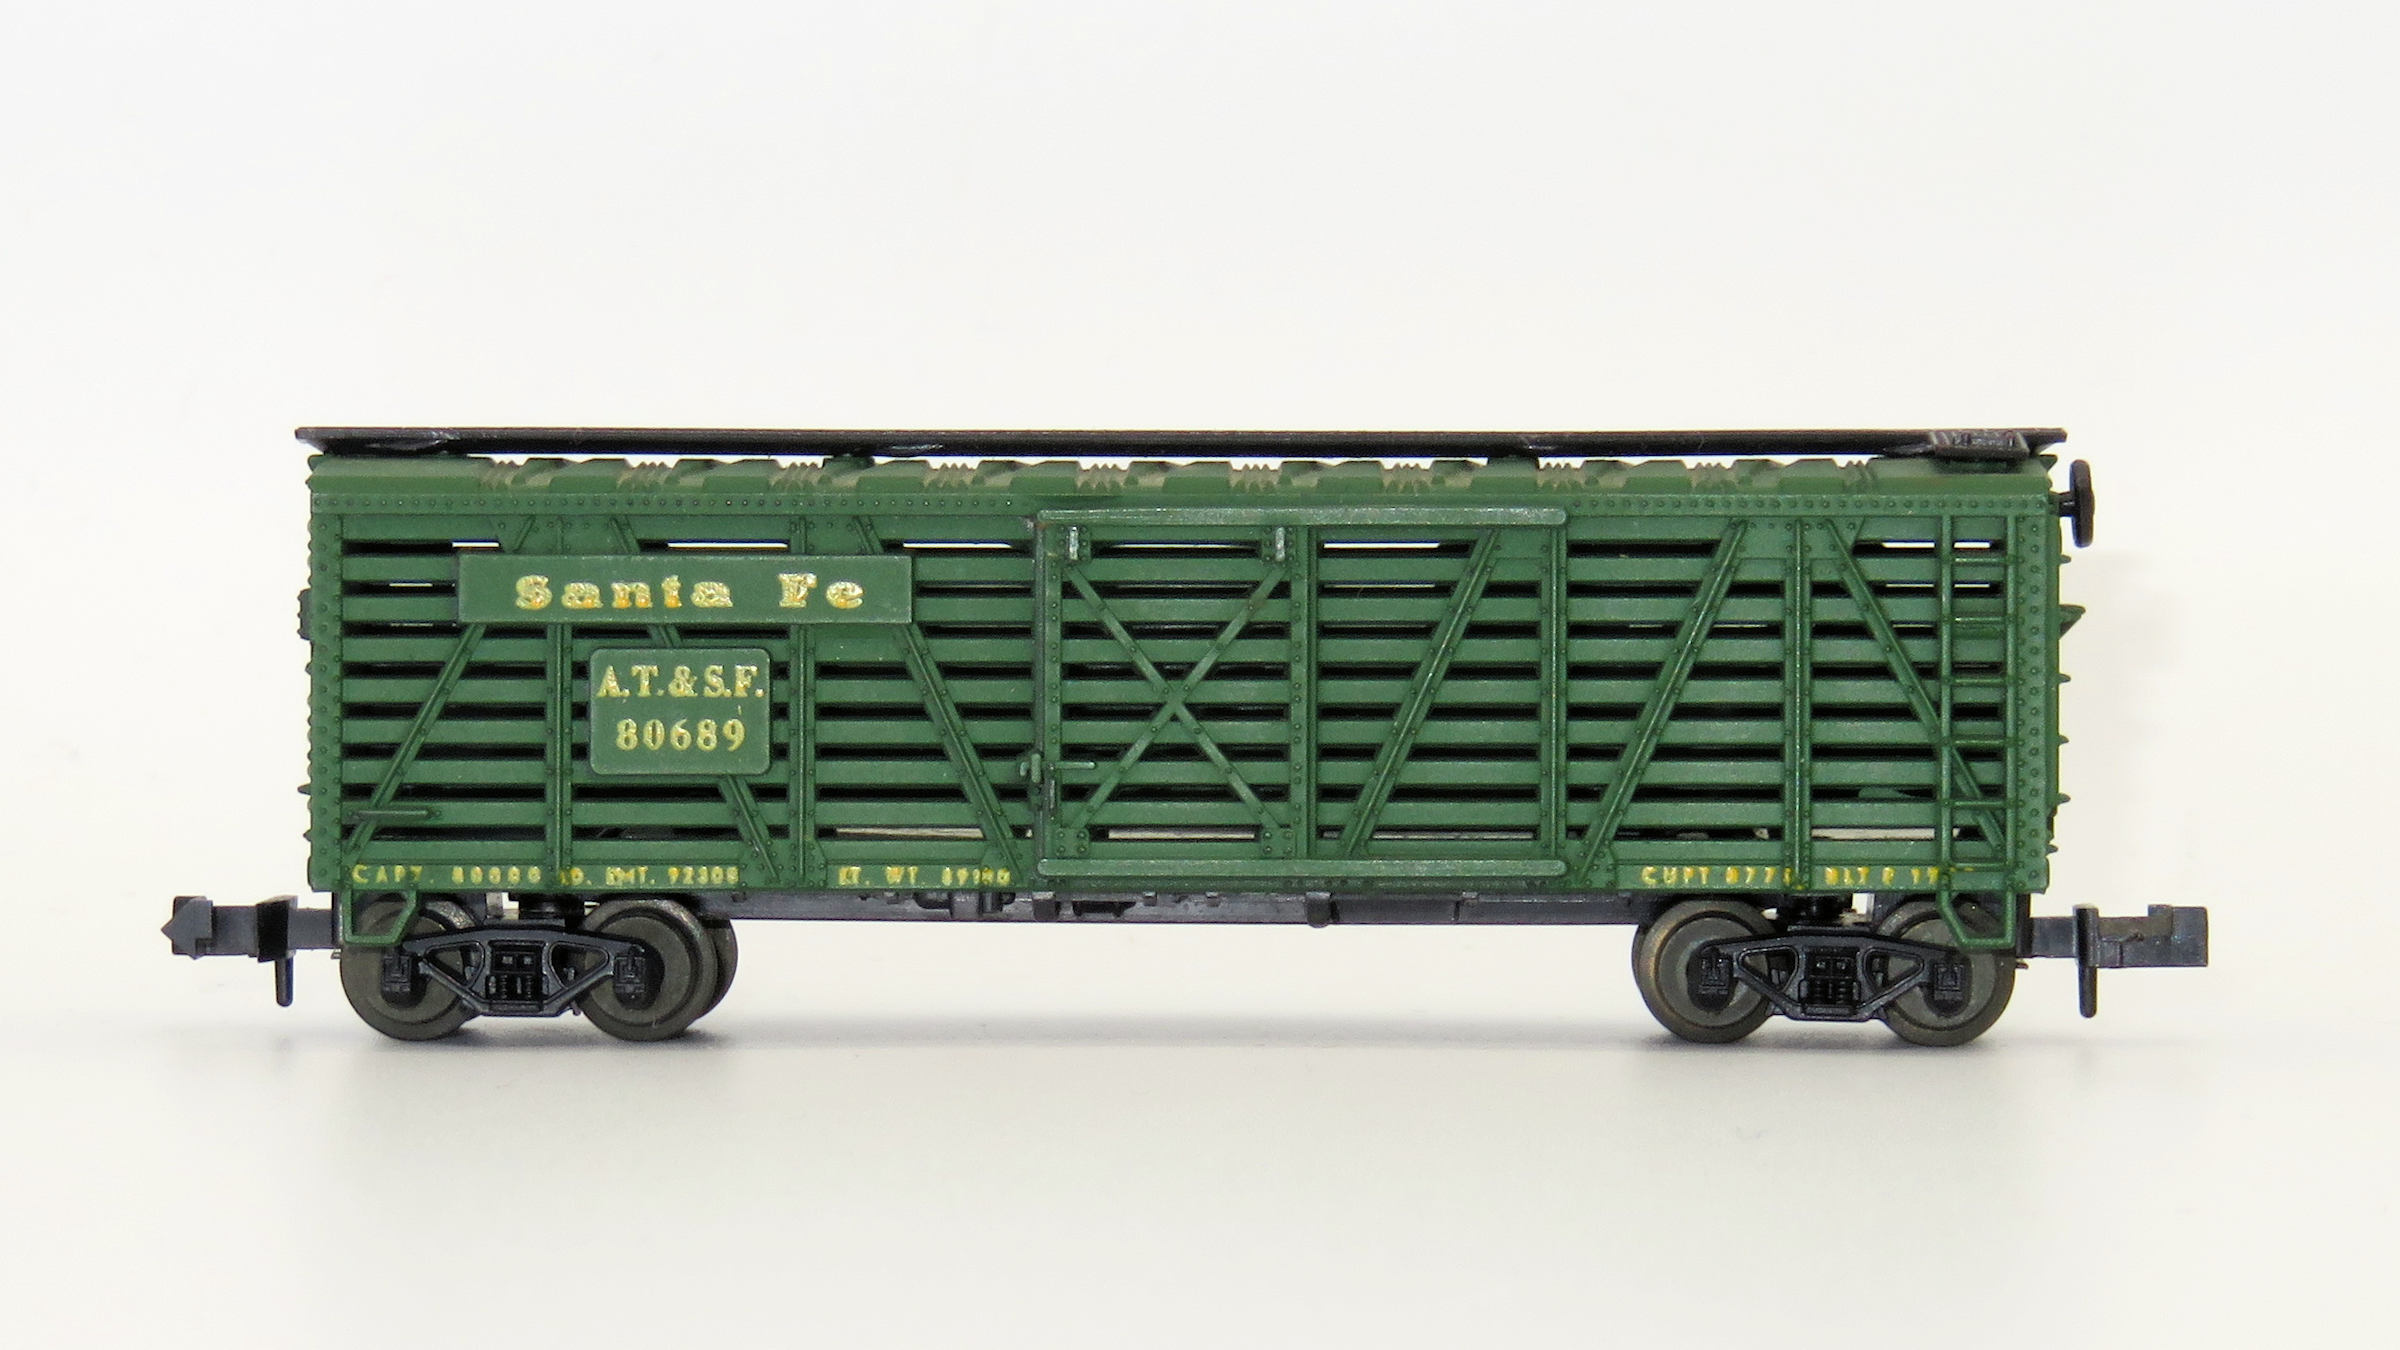 N Scale - Minitrix - 3216 - Stock Car, 40 Foot, Composite - Santa Fe - 80689